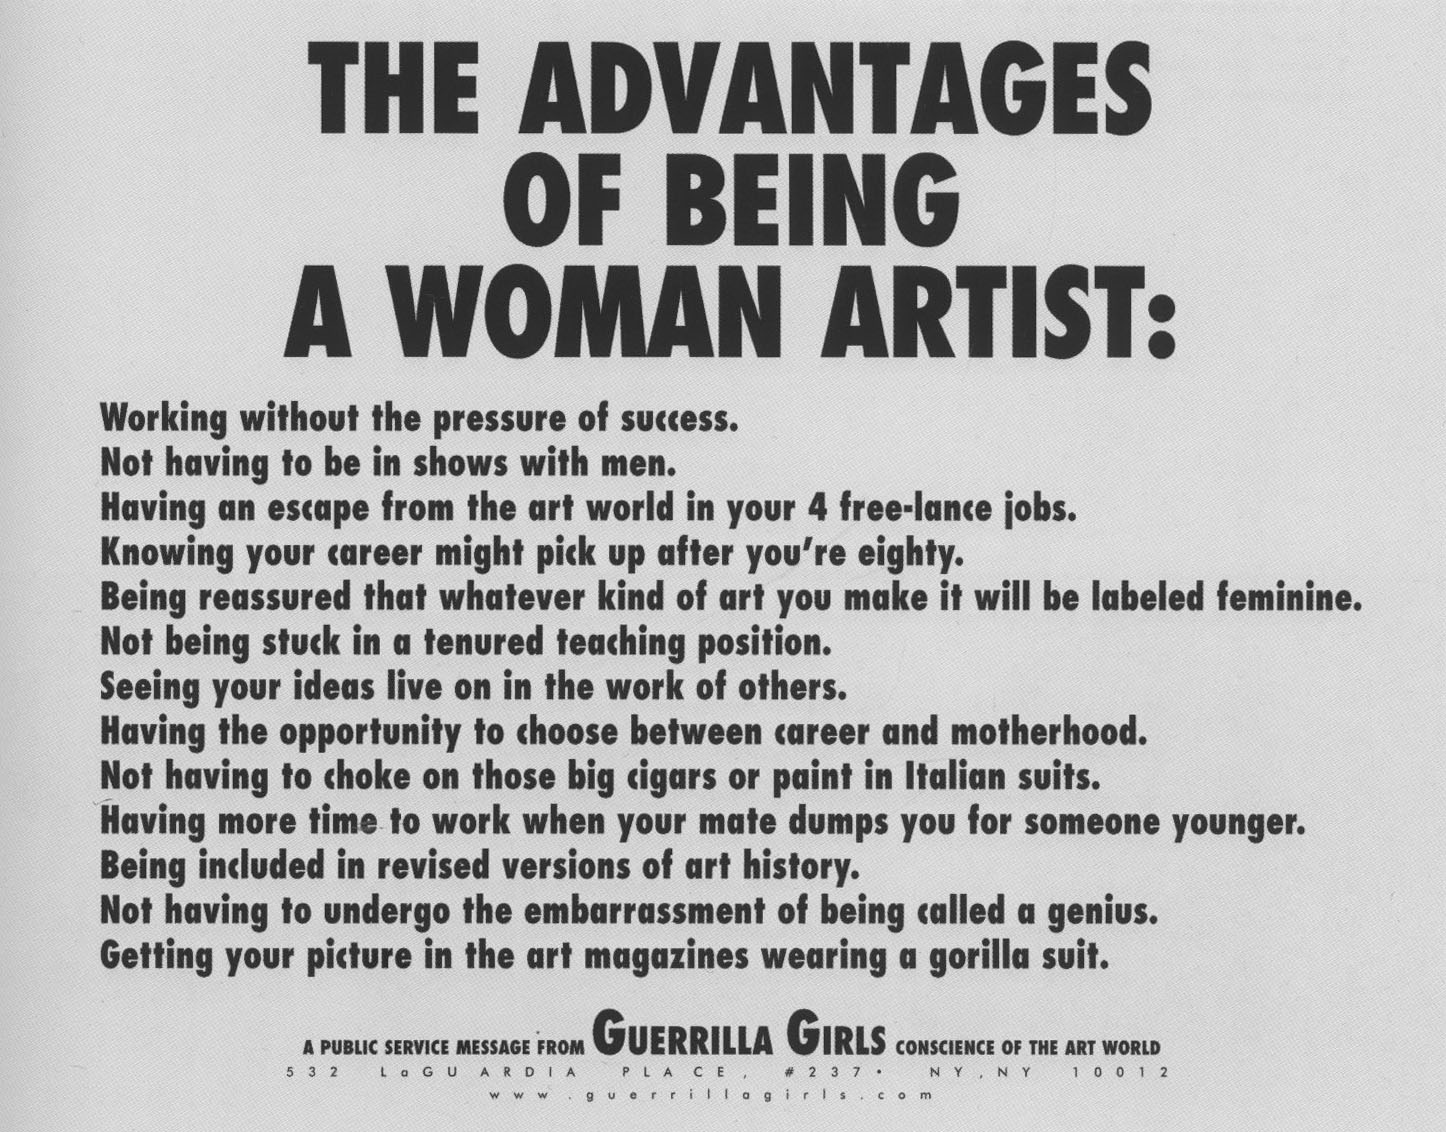 THE ADVANTAGES OF BEING A WOMAN ARTIST 1988 GUERRILLA GIRLS